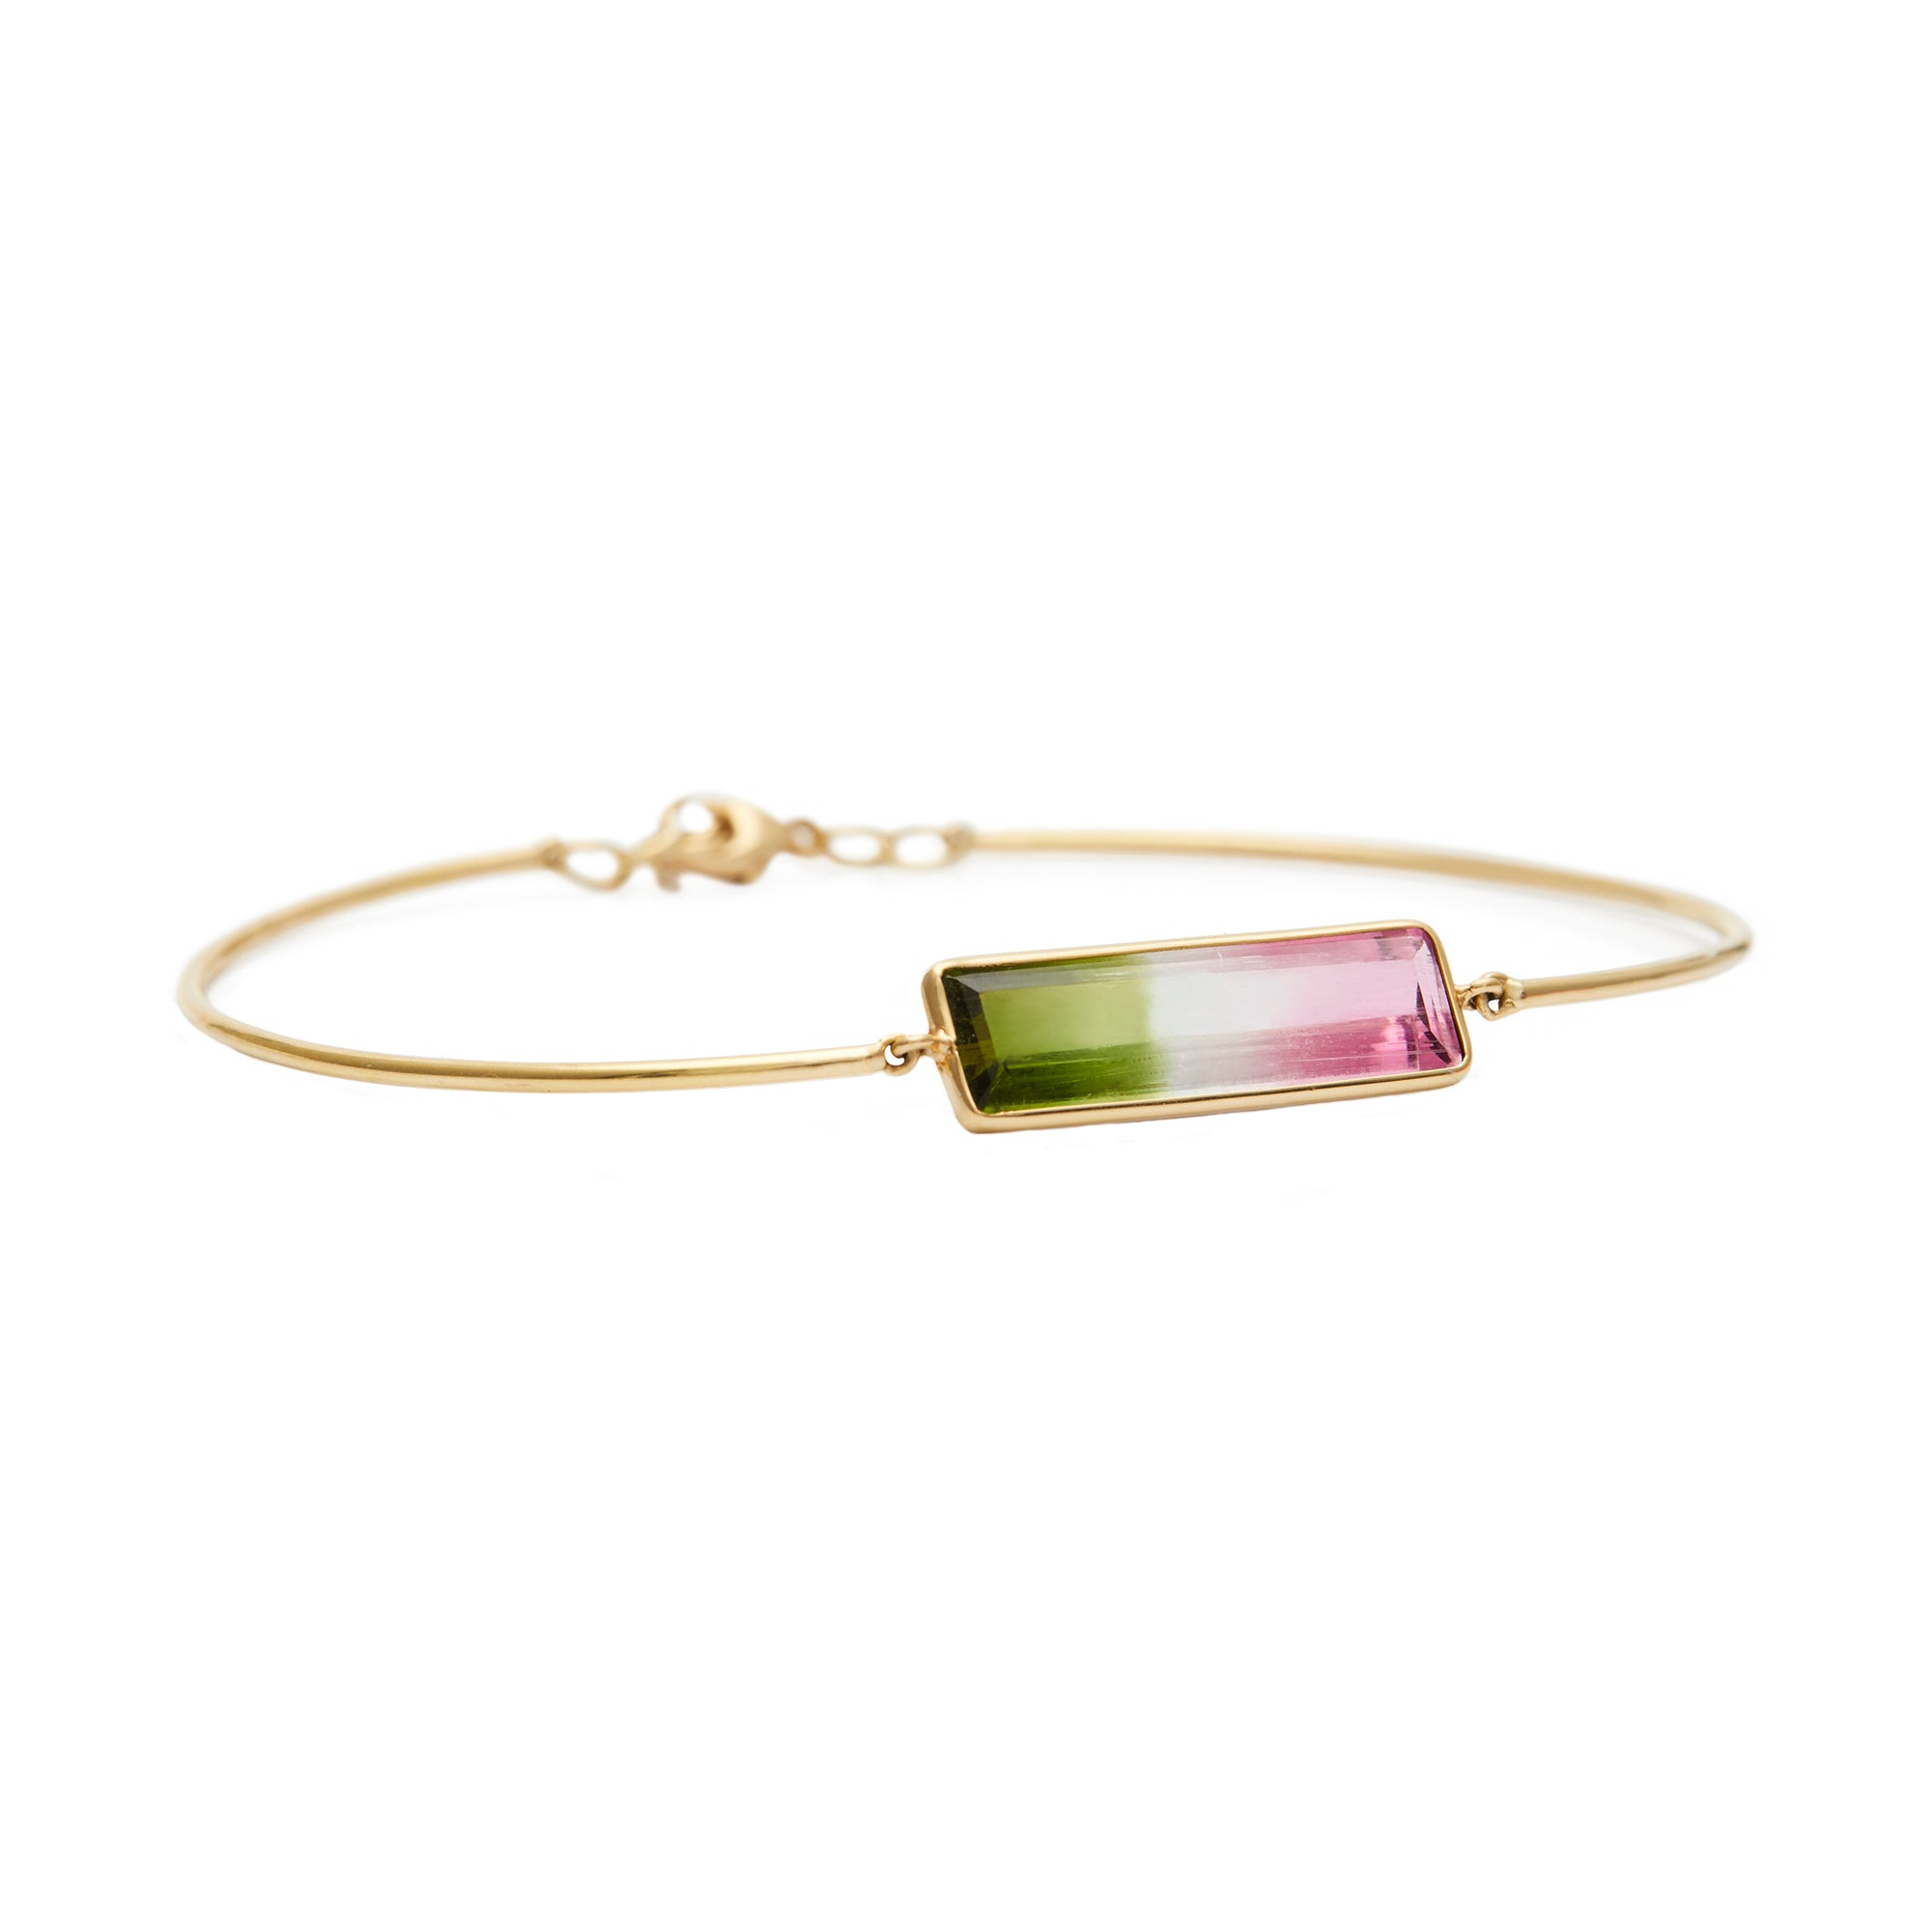 Watermelon Tourmaline Bangle Bracelet by Yi Collection for Broken English Jewelry